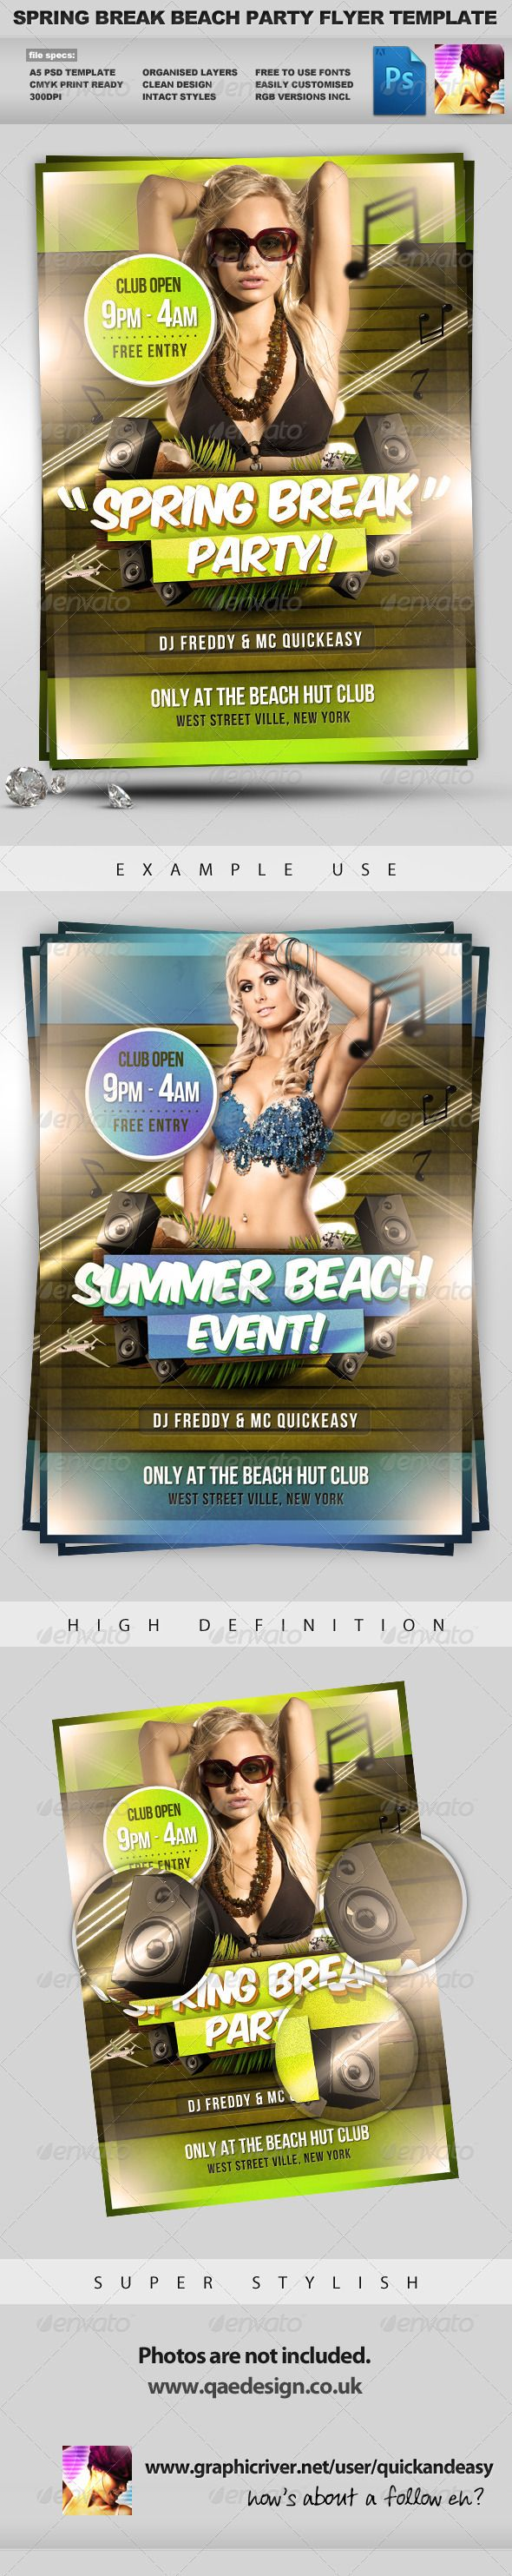 Spring Break Flyer Template  #GraphicRiver           	        Spring Break PSD Party Flyer Template  SPRING BREAK BEACH PARTY FLYER TEMPLATE  	 A clean, crisp, high impact, spring break PSD Flyer Template Layout, perfect for any spring break or beach party event promotion!  	 Highly editable PSD flyer template, very easily customise to make it your own in seconds!  	 What does this file ship with?  	 Spring Break PSD Flyer Template comes with the following awesome features:    2x PSD Flyer Templates  Included Print Ready CMYK PSD Files  Included Original RGB PSD Files  High Quality 300dpi Print Ready Files  3mm Bleed  Highly Organised Layers  Clean Design  Editable Styles  High Quality Font  Friendly Customer Support  	 Fonts Required:   Bebas Neue  Komika Axis   	 Photographs are not included.  	 Please download, send me your feedback and if you have any problems I will be more than happy to help you out with your purchase, one to one!  	 Many Thanks! ~Quickandeasy   Visit me over at my site,  QAE Design.co.uk  More Party Flyer Templates: 	                                                        Created: 2January12 GraphicsFilesIncluded: PhotoshopPSD Layered: Yes MinimumAdobeCSVersion: CS2 PrintDimensions: 5.2×8.2 Tags: a4 #a5 #beachparty #event #flyer #flyertemplate #music #party #poster #springbreak #springbreakflyer #springbreakflyertemplate #summerflyer #summerflyertemplate #template